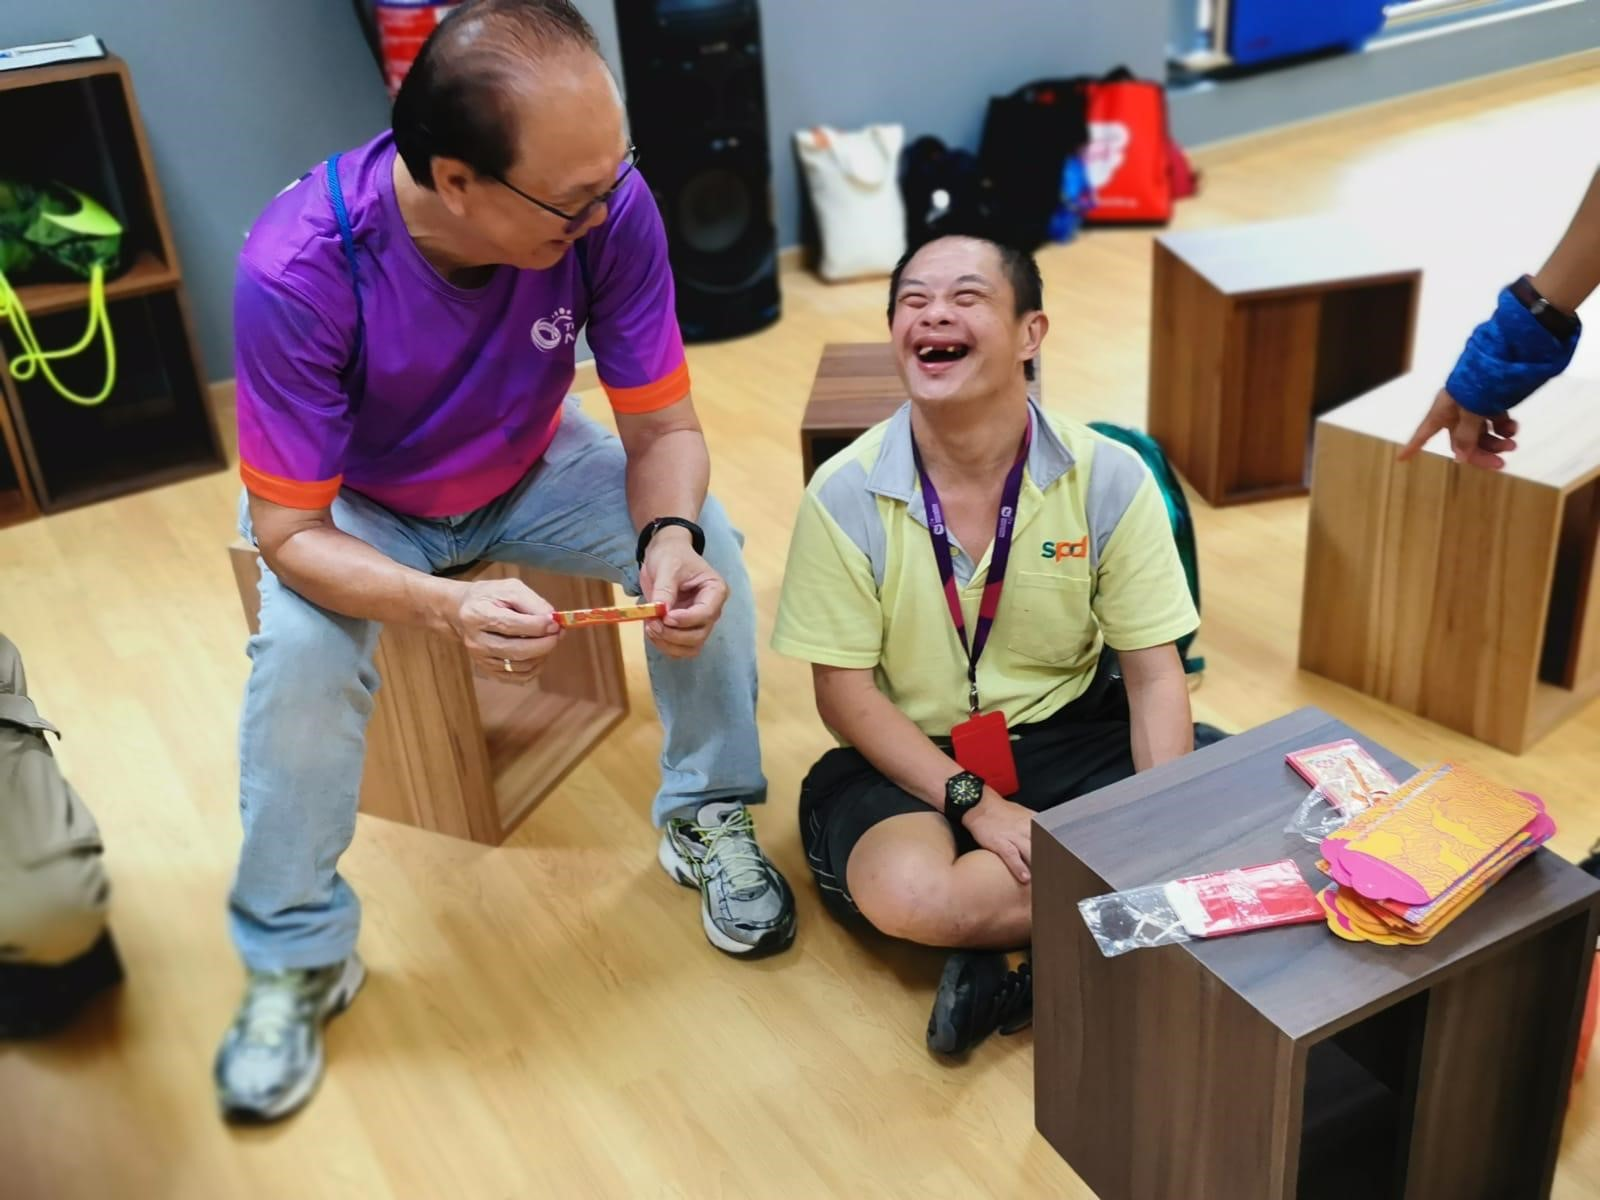 Team Nila volunteers spread joy at SPD's Day Activity Centre